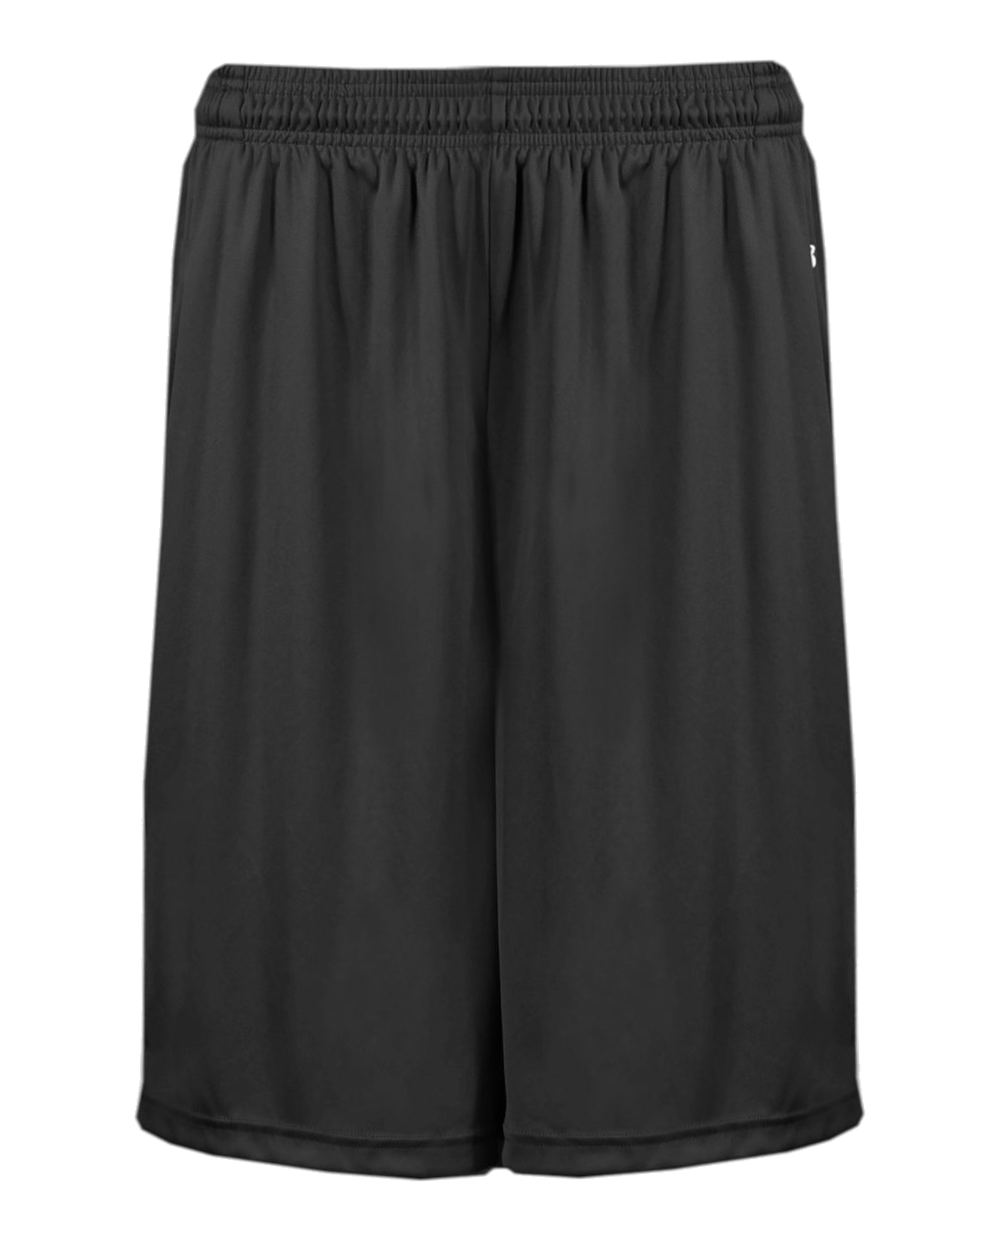 B-Core Pocketed 10 Inch Short - Black